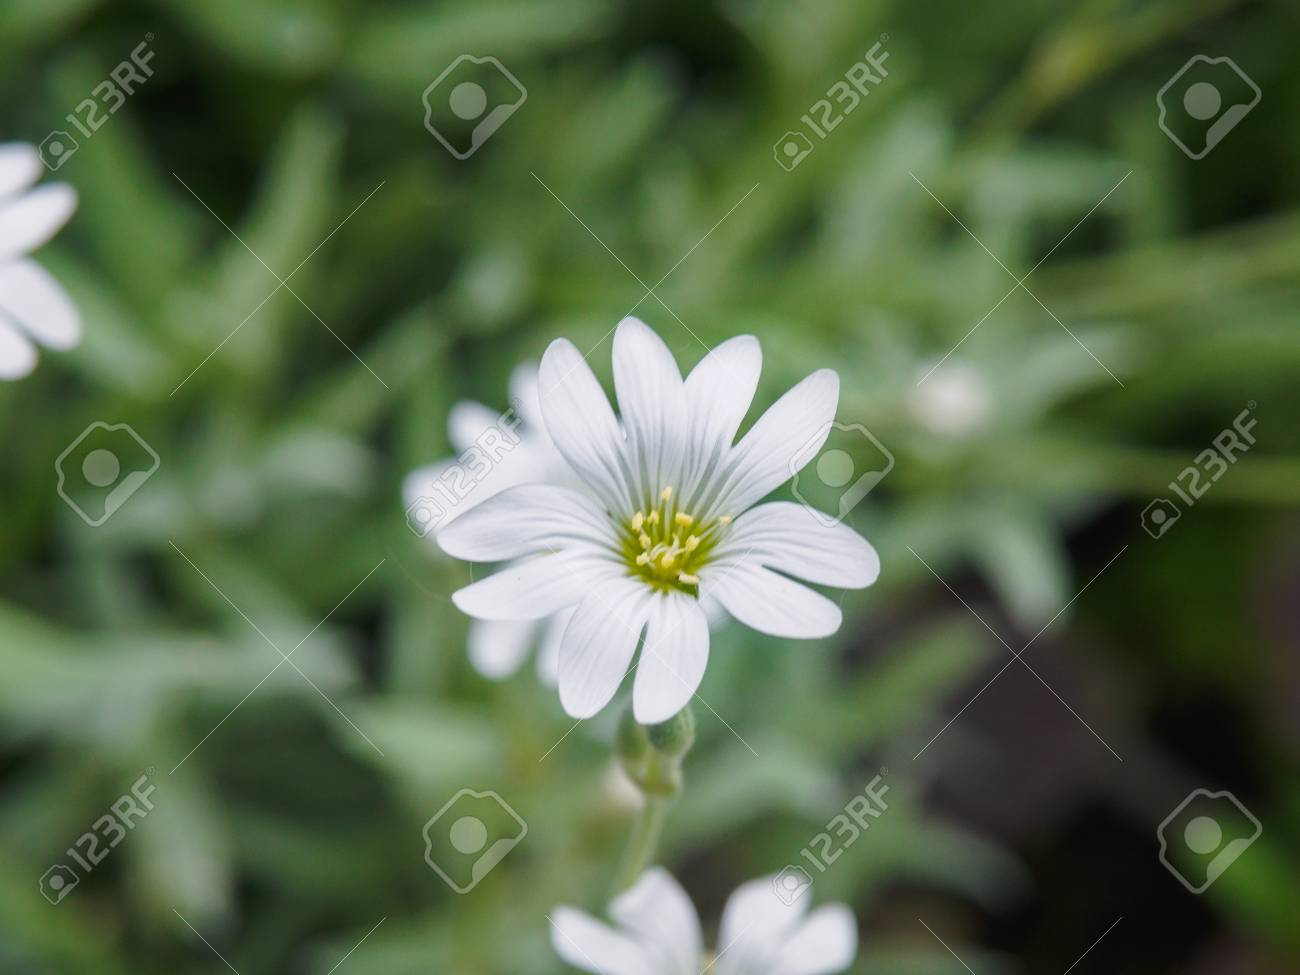 White Flower In Garden Small White Flowers Shooting With Soft